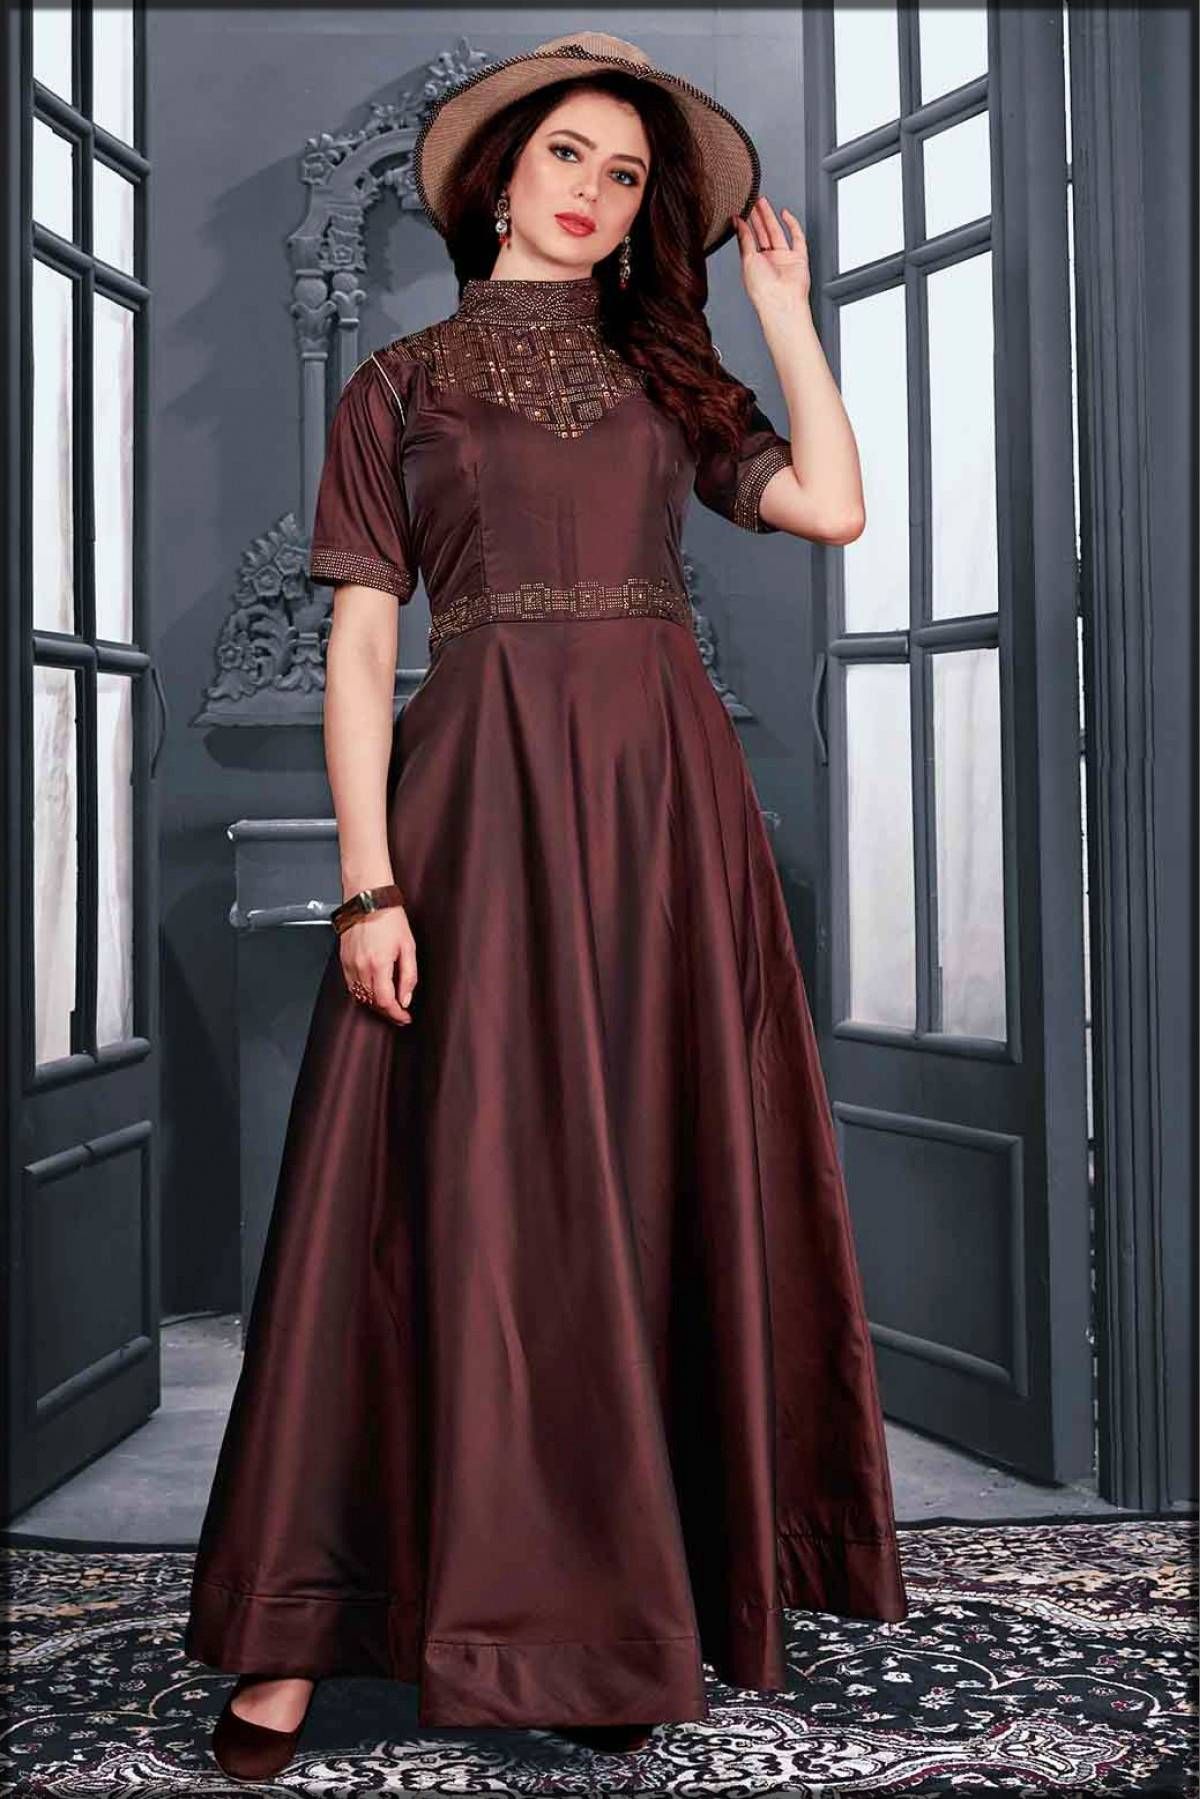 stylish long frock for ladies - brown